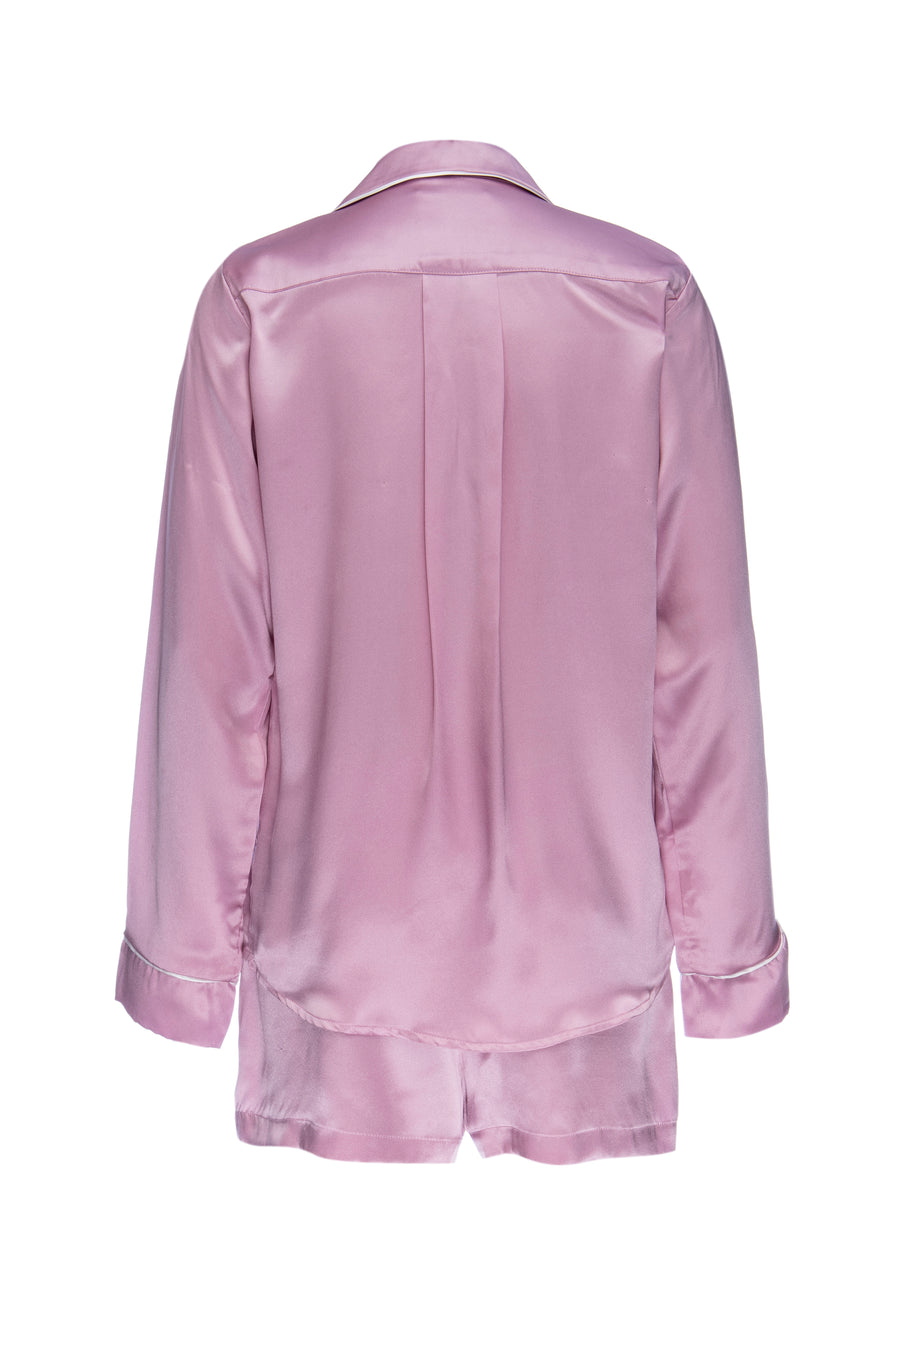 Silk Charmeuse Long Sleeved PJ Top + Short Set: Orchid Pink